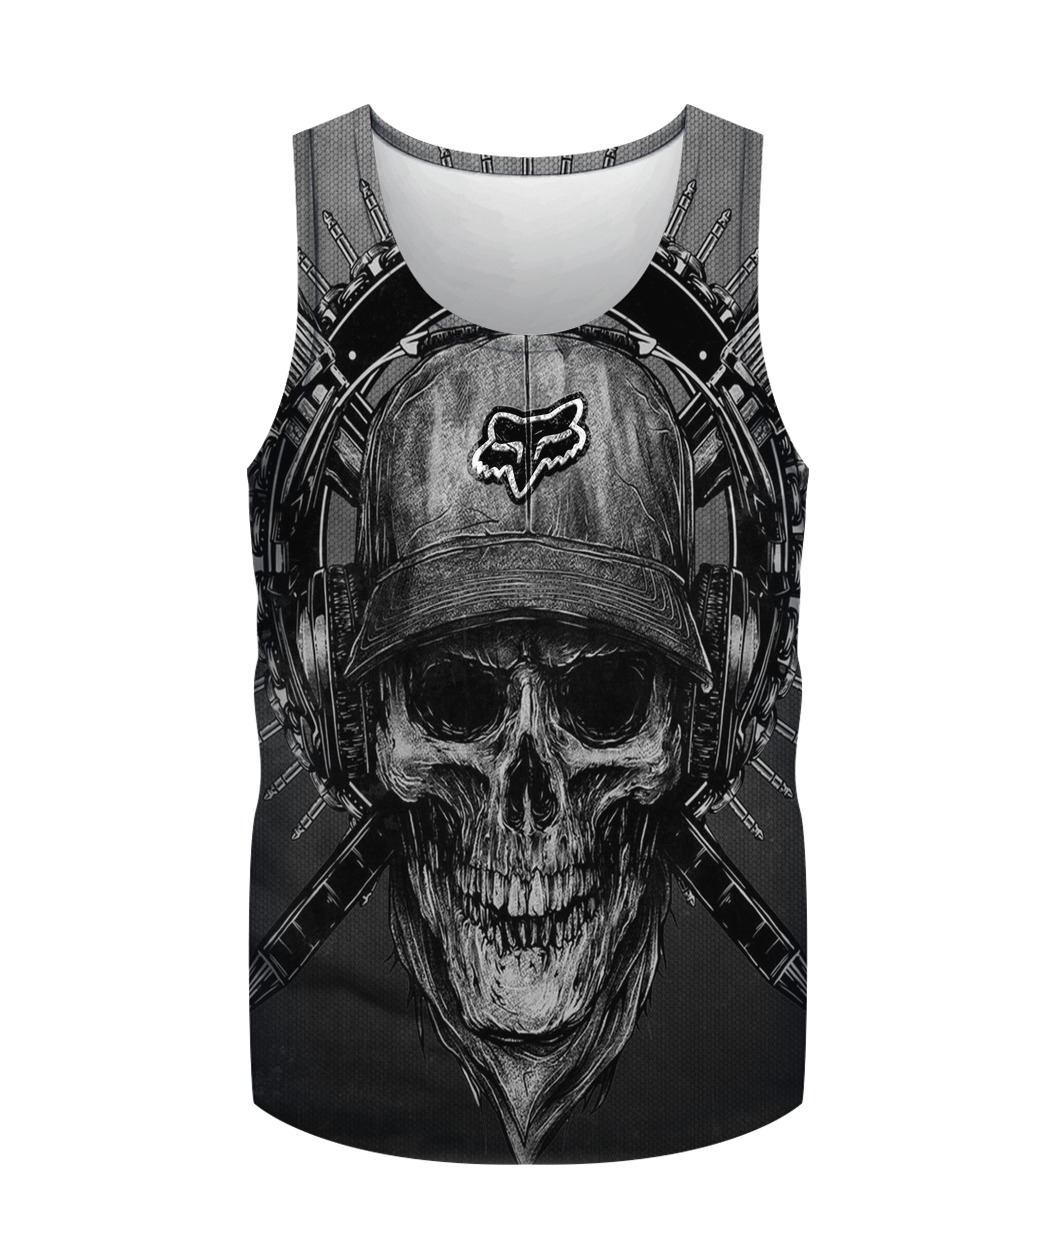 Terror noise division fox racing all over print tank top